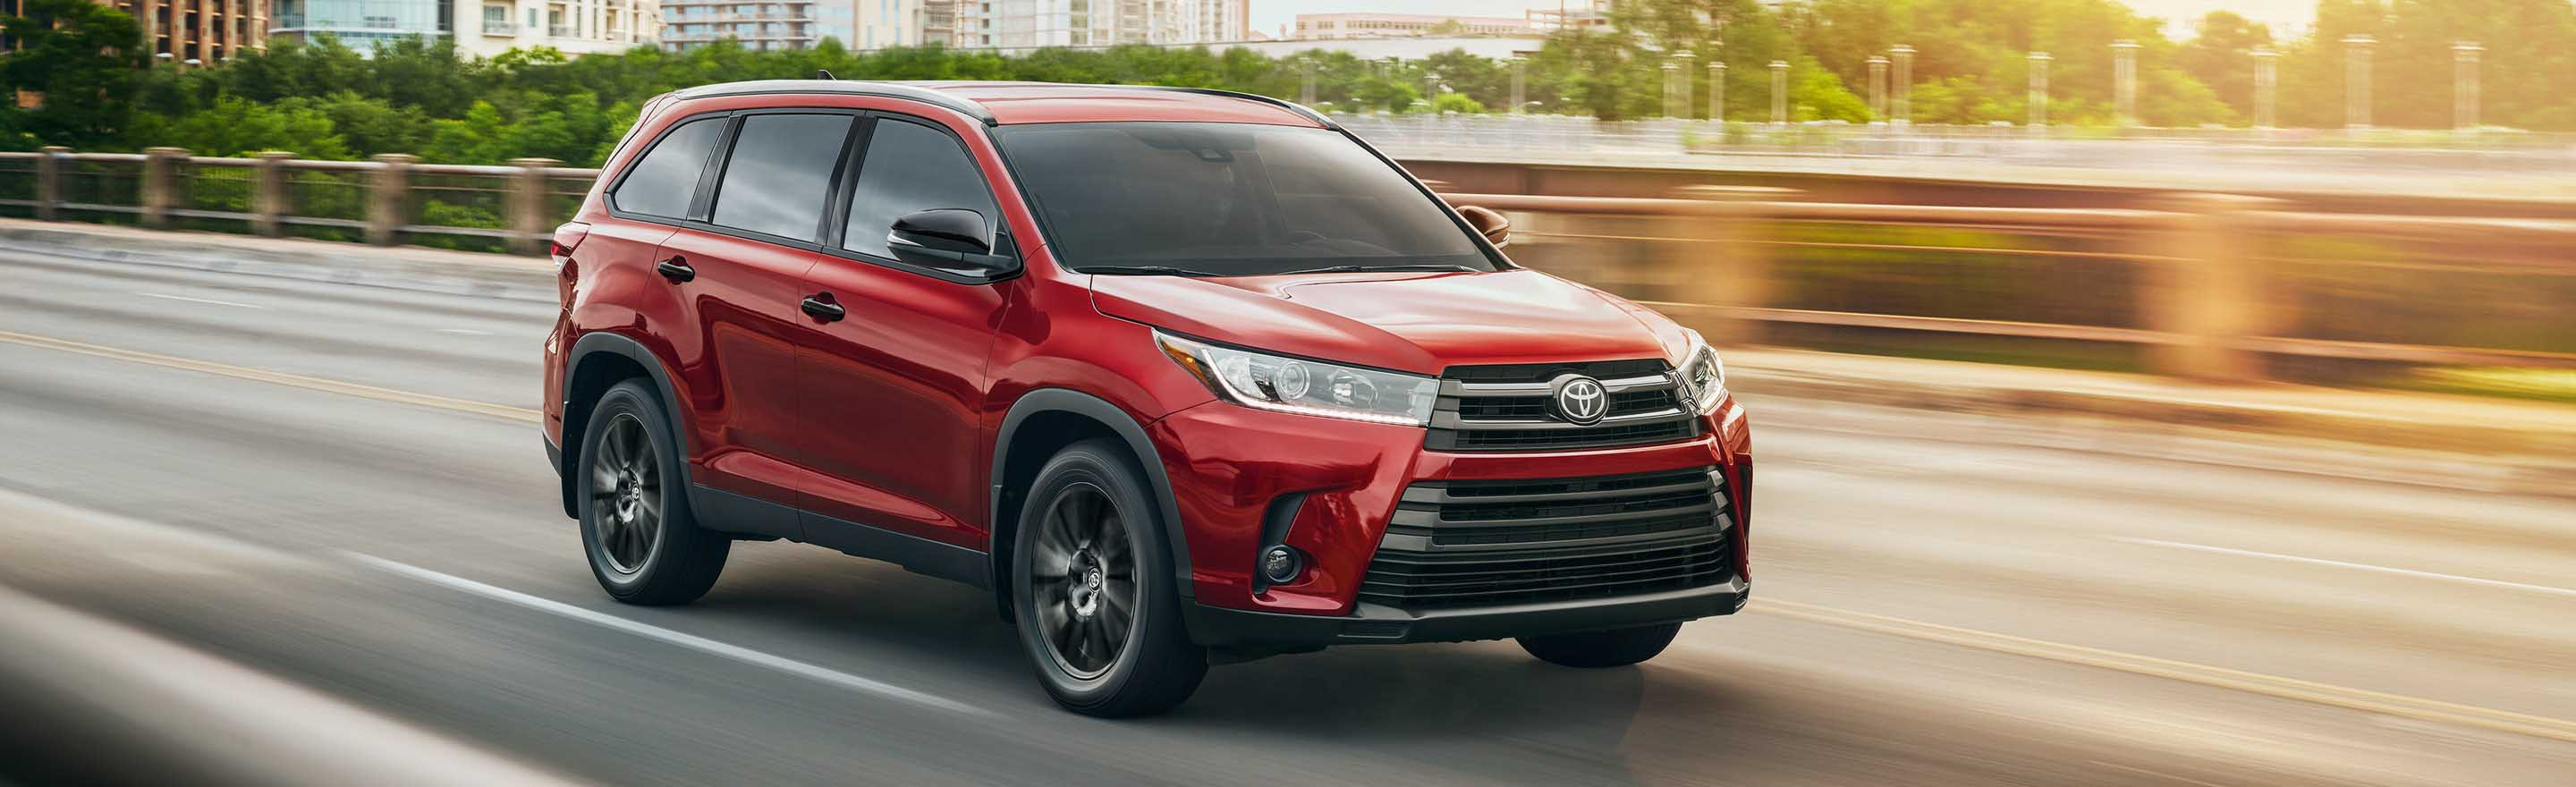 Upgrade to a 2019 Toyota Highlander SUV in Denison, TX